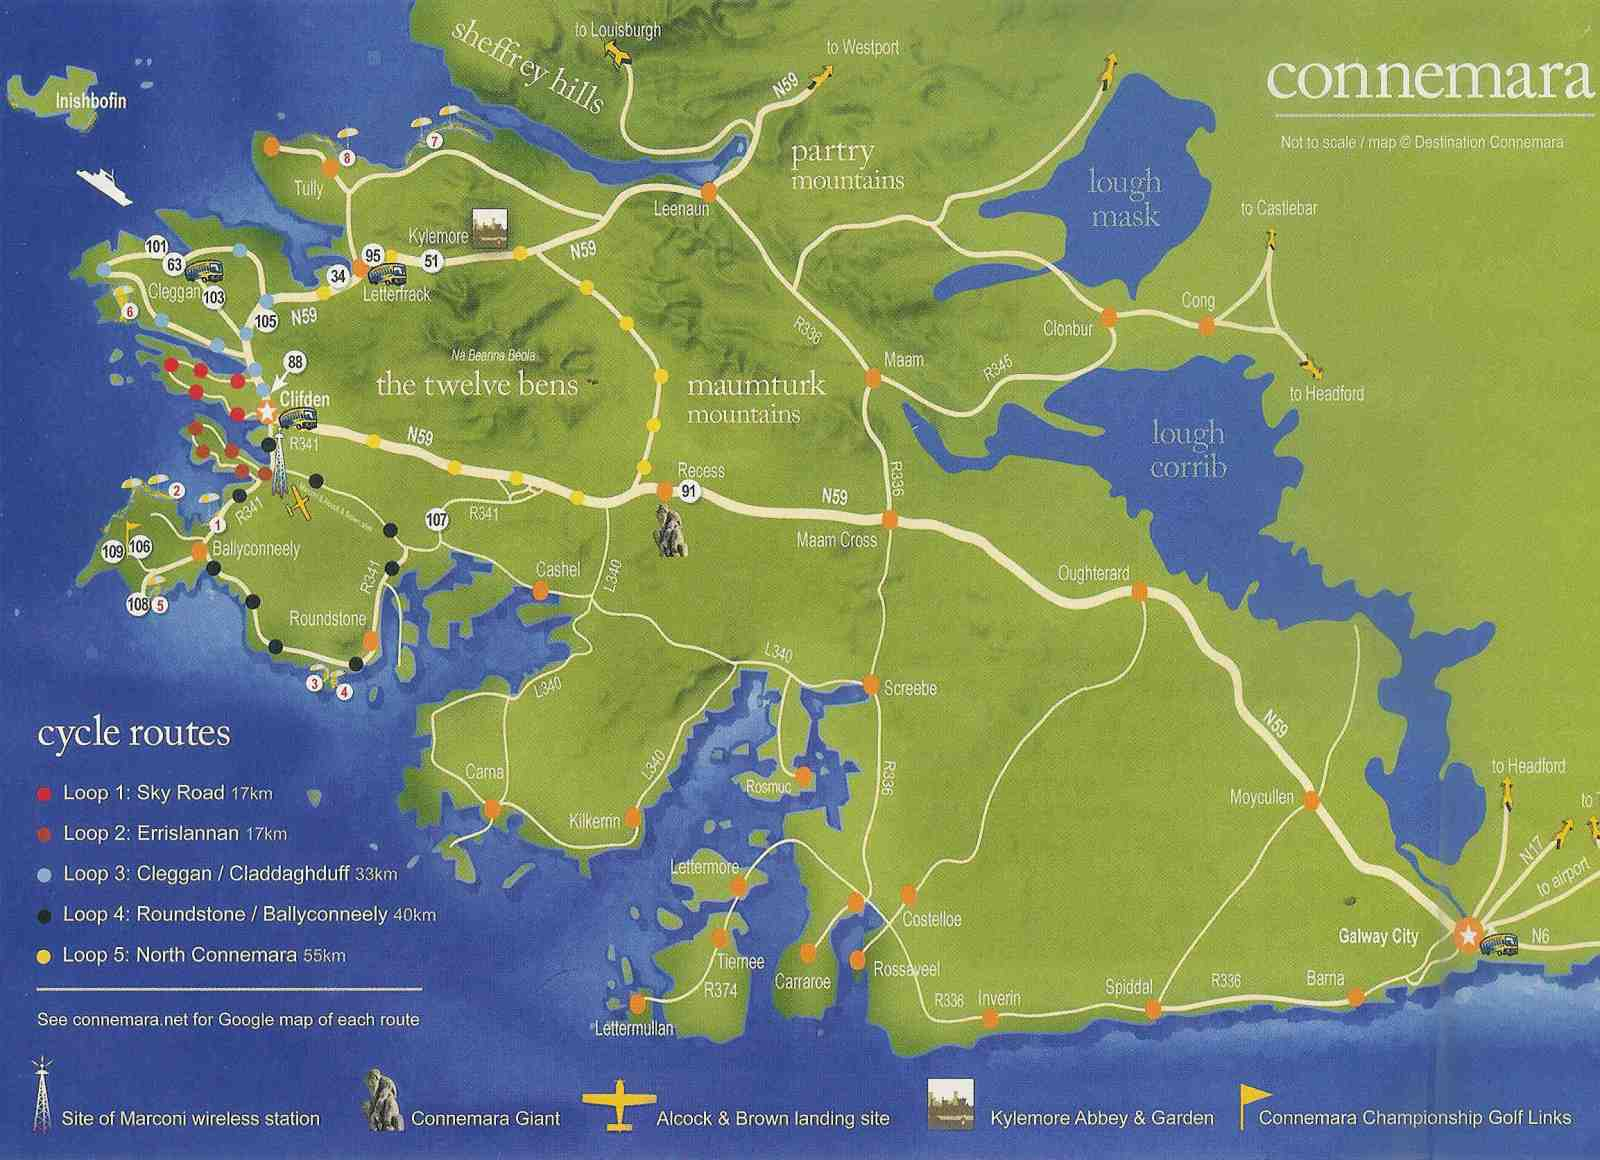 Office de tourisme irlande carte - Office de tourisme irlandais ...